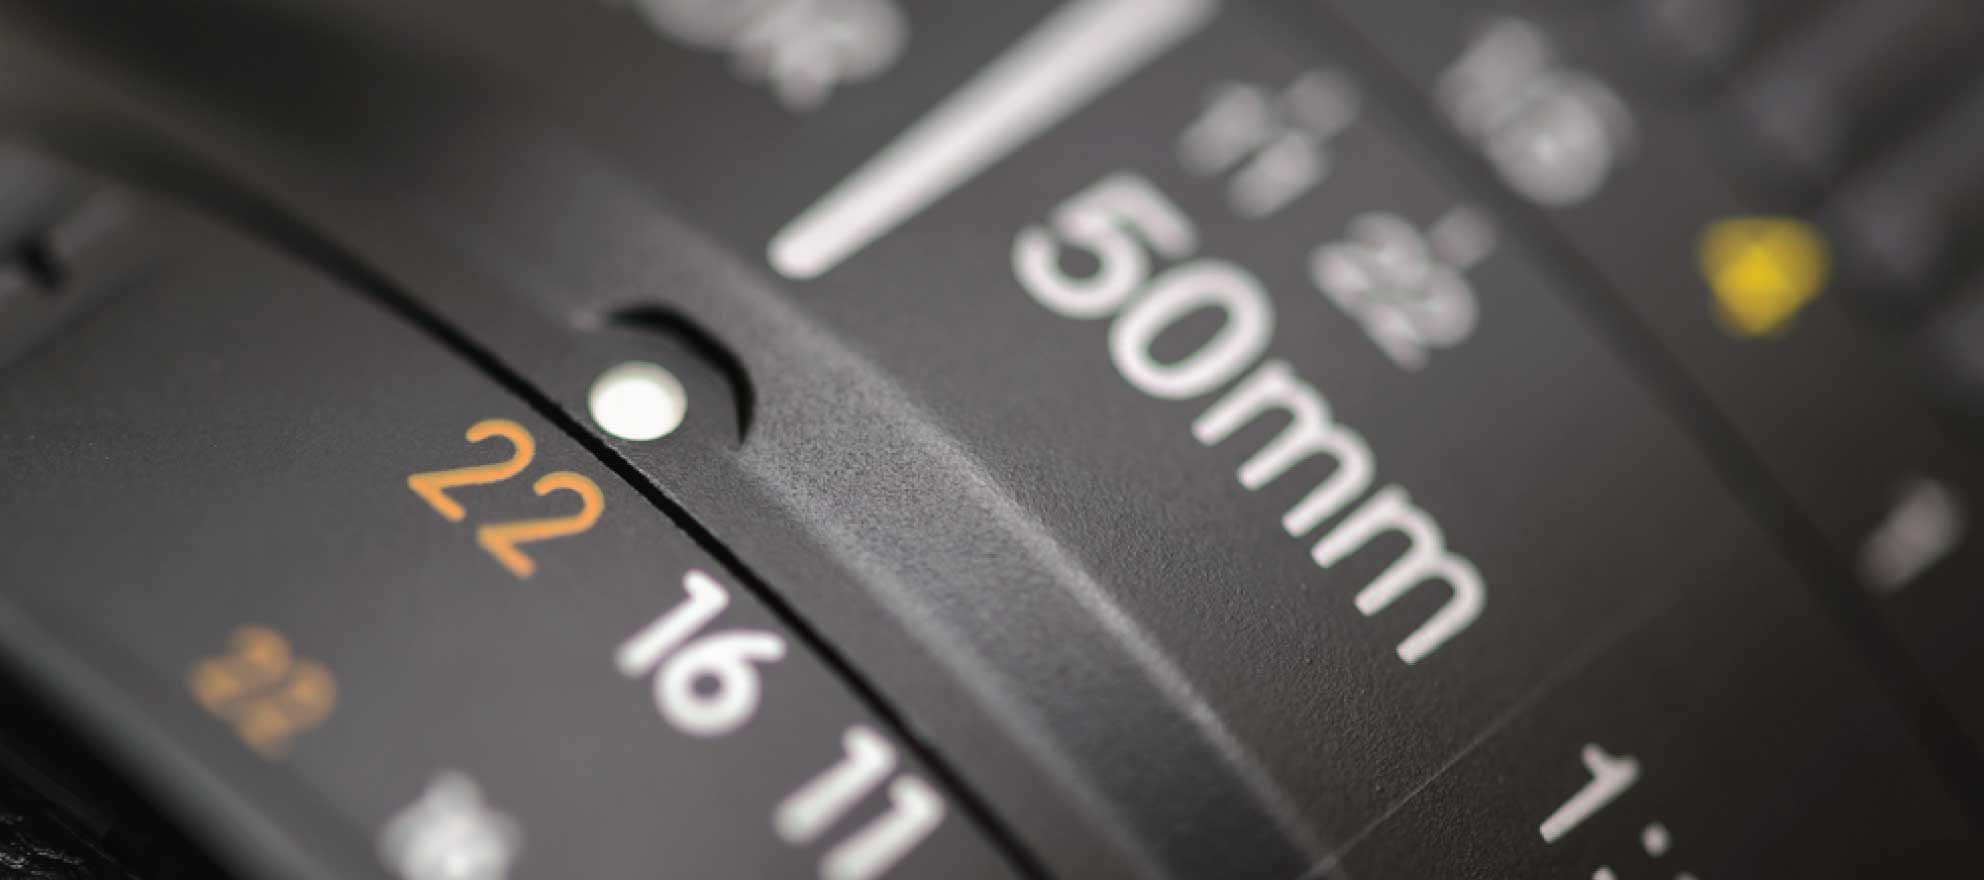 How to take listing photos without infringing on anyone's privacy